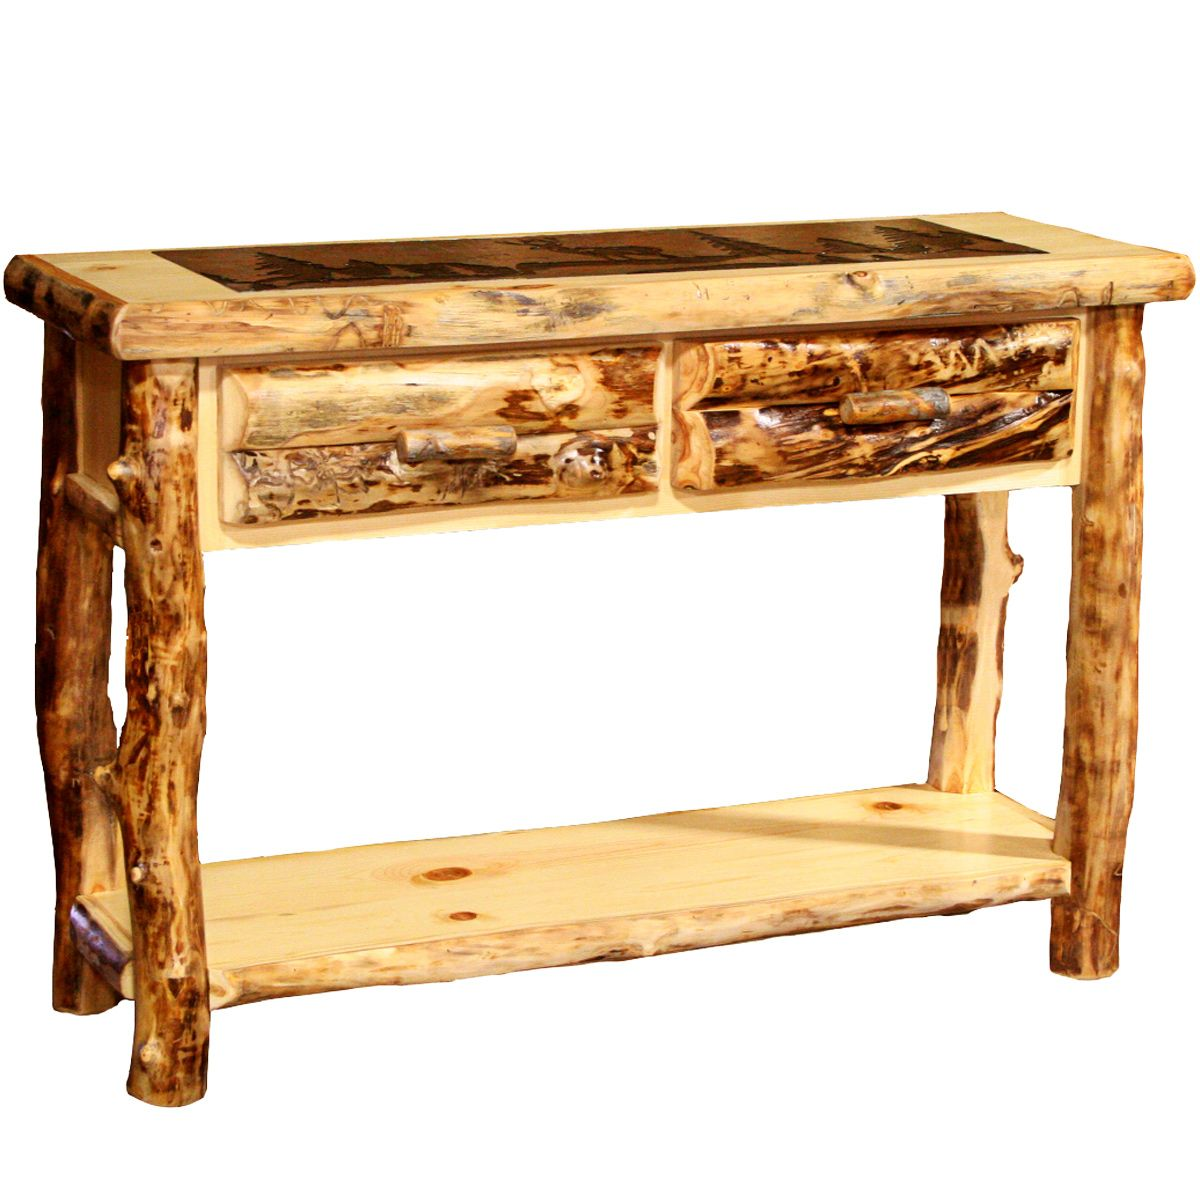 Aspen Sofa Table with Slate Top - Bison